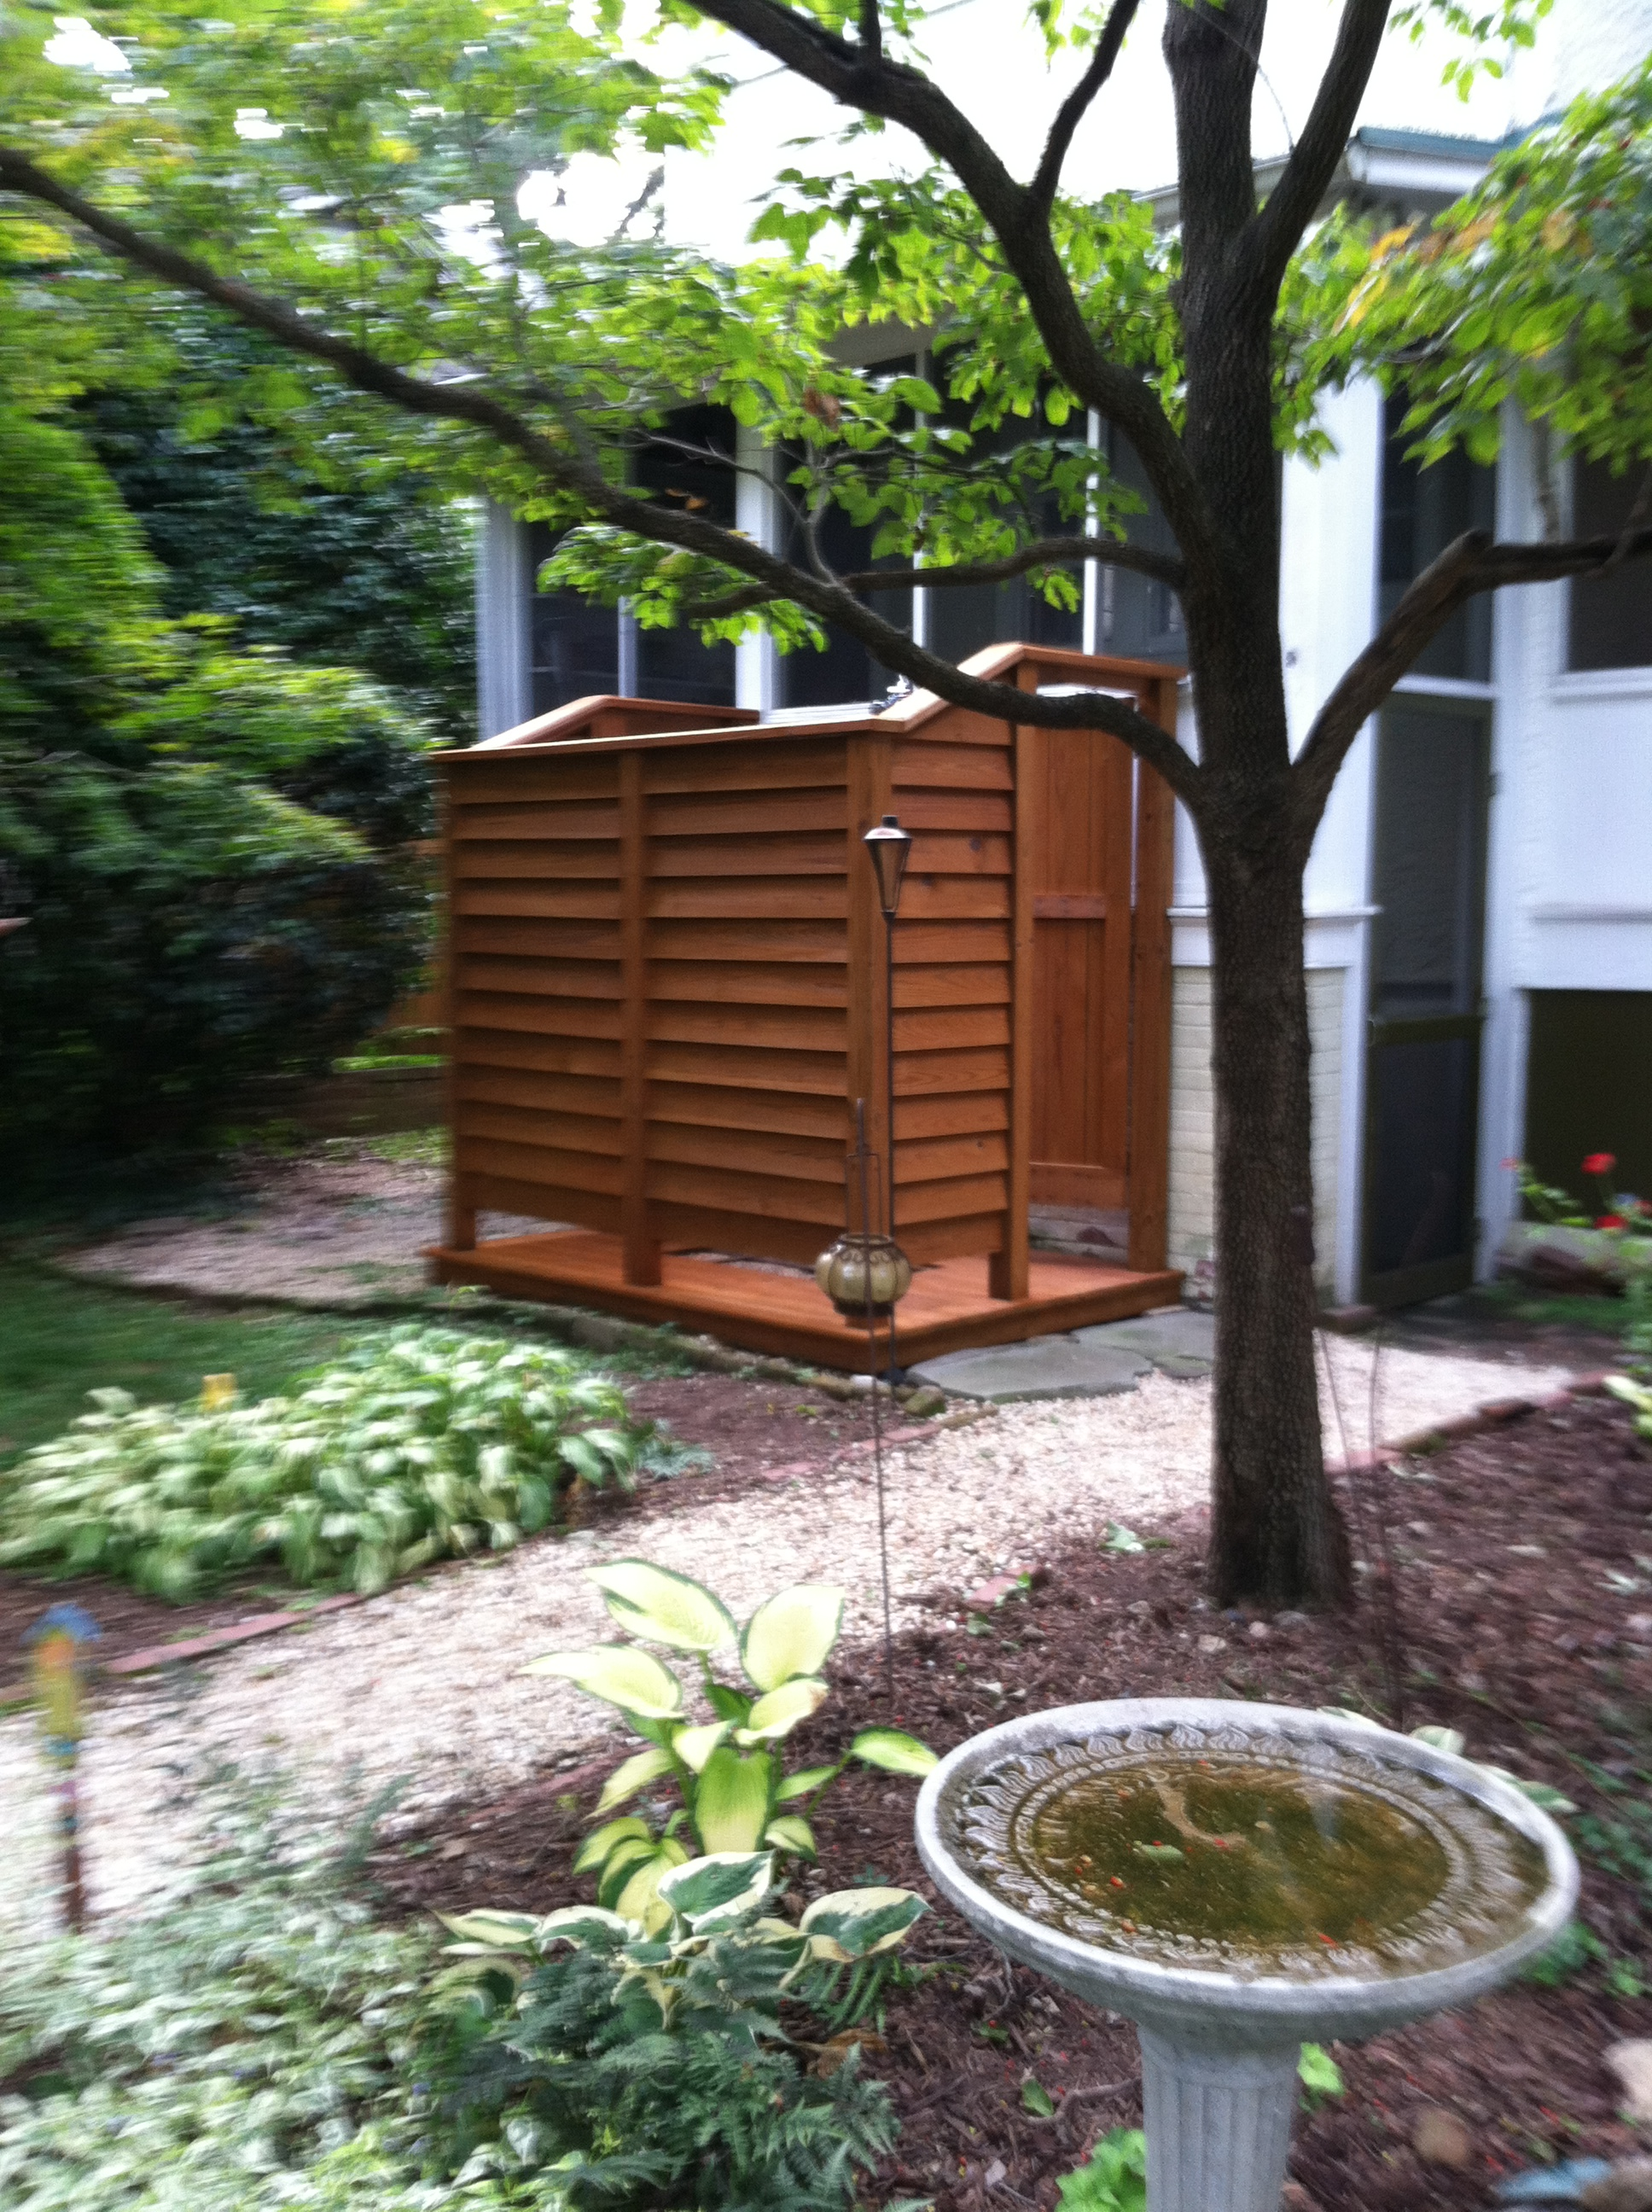 How to make an outdoor shower - 1169